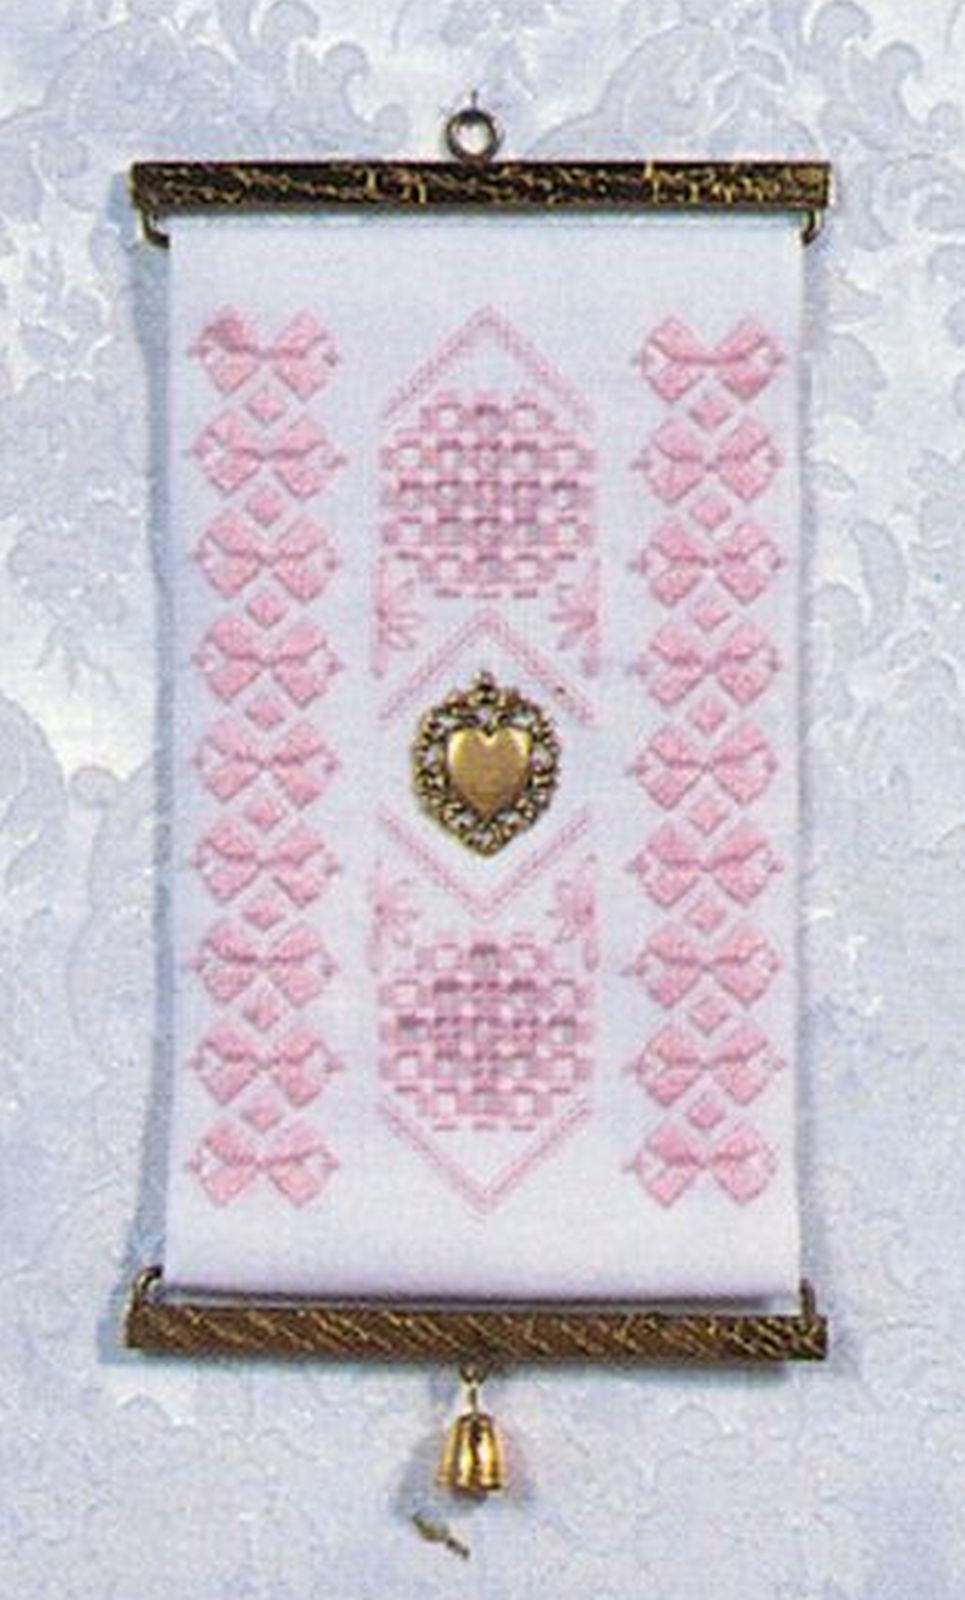 I Love Summer Hardanger Embroidery Seasonal Sampler Rosalyn Watnemo Book image 4